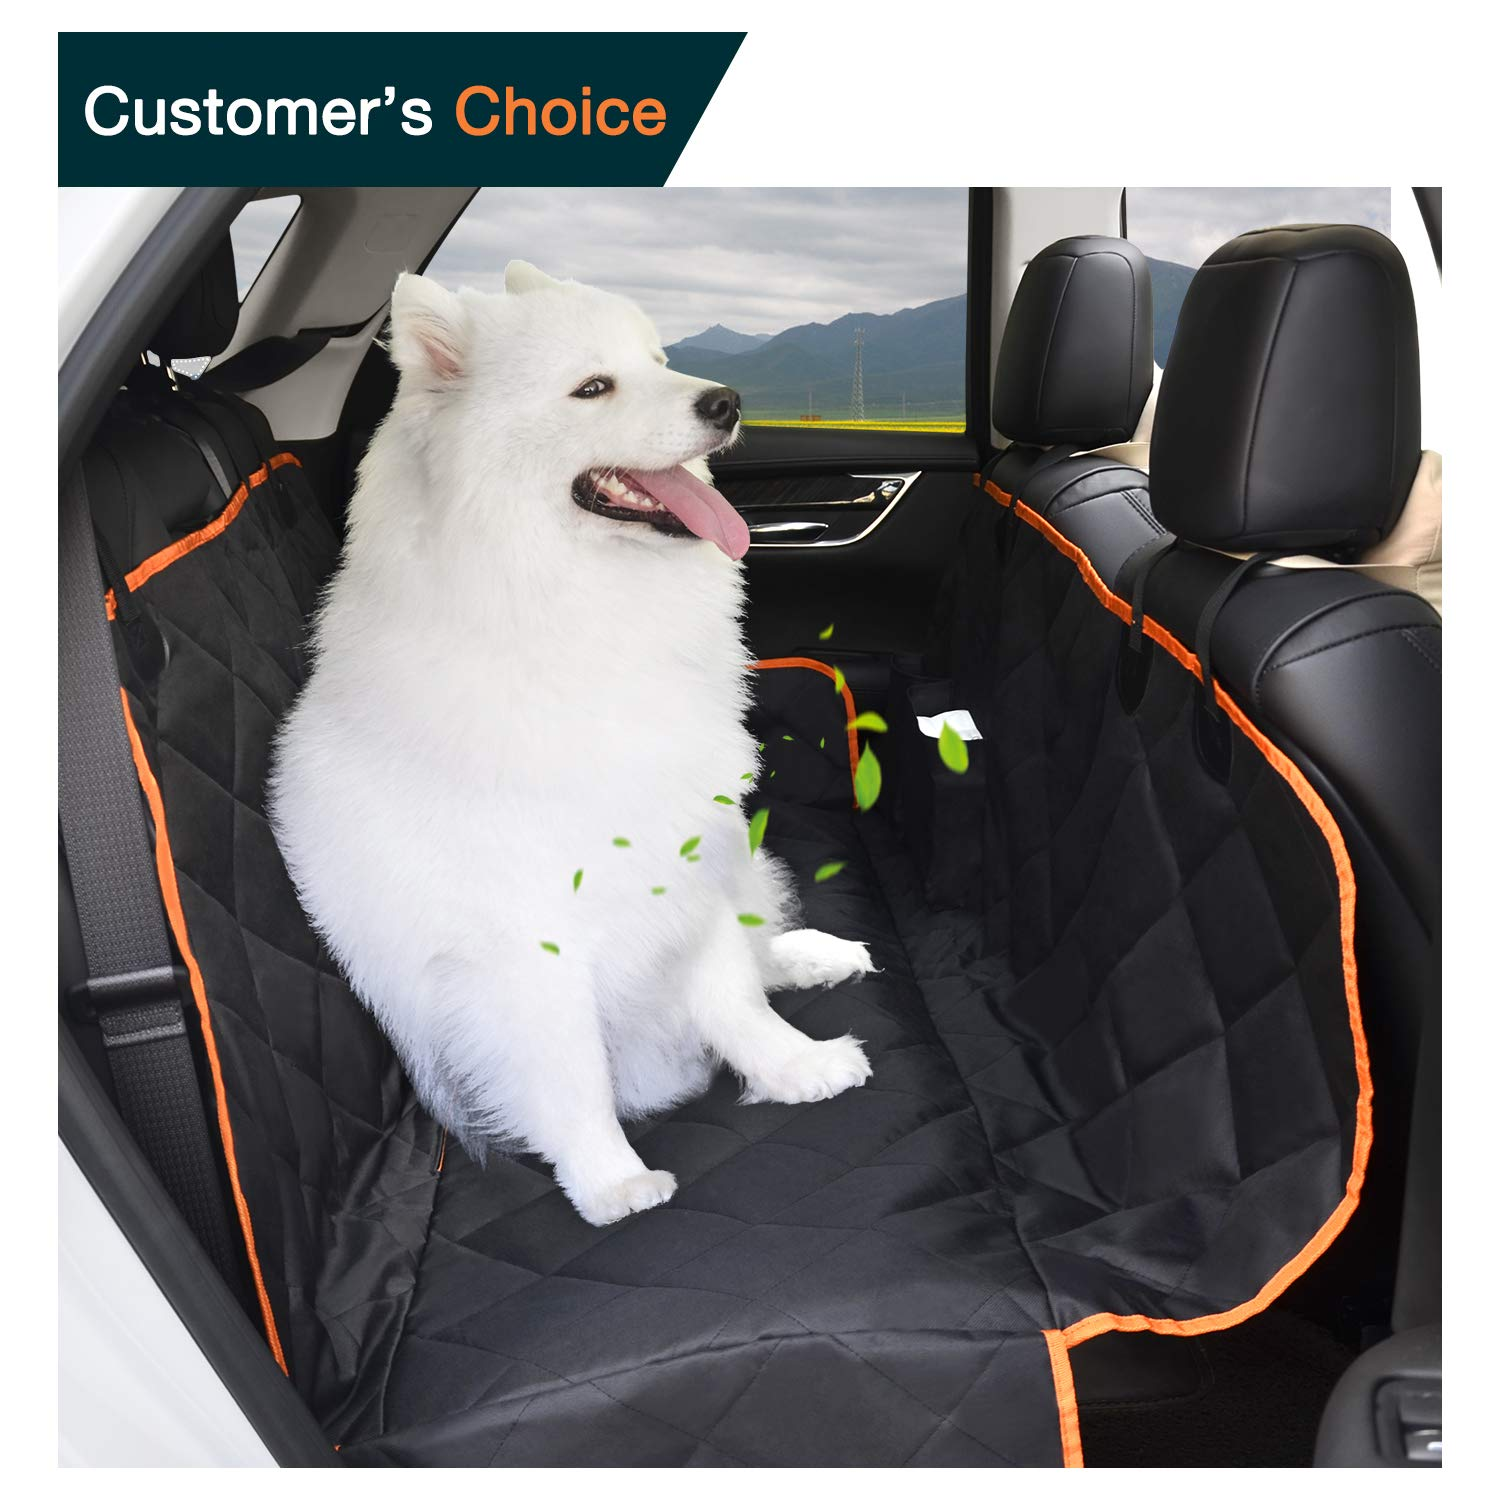 IEOKE Dog Car Seat Covers, Dog Seat Cover Waterproof & Scratch Proof & Nonslip With Adjustable Seat Anchors, Pet Car Seat cover fit for family cars, Trucks, and Suv-145 x 135 cm(Black)